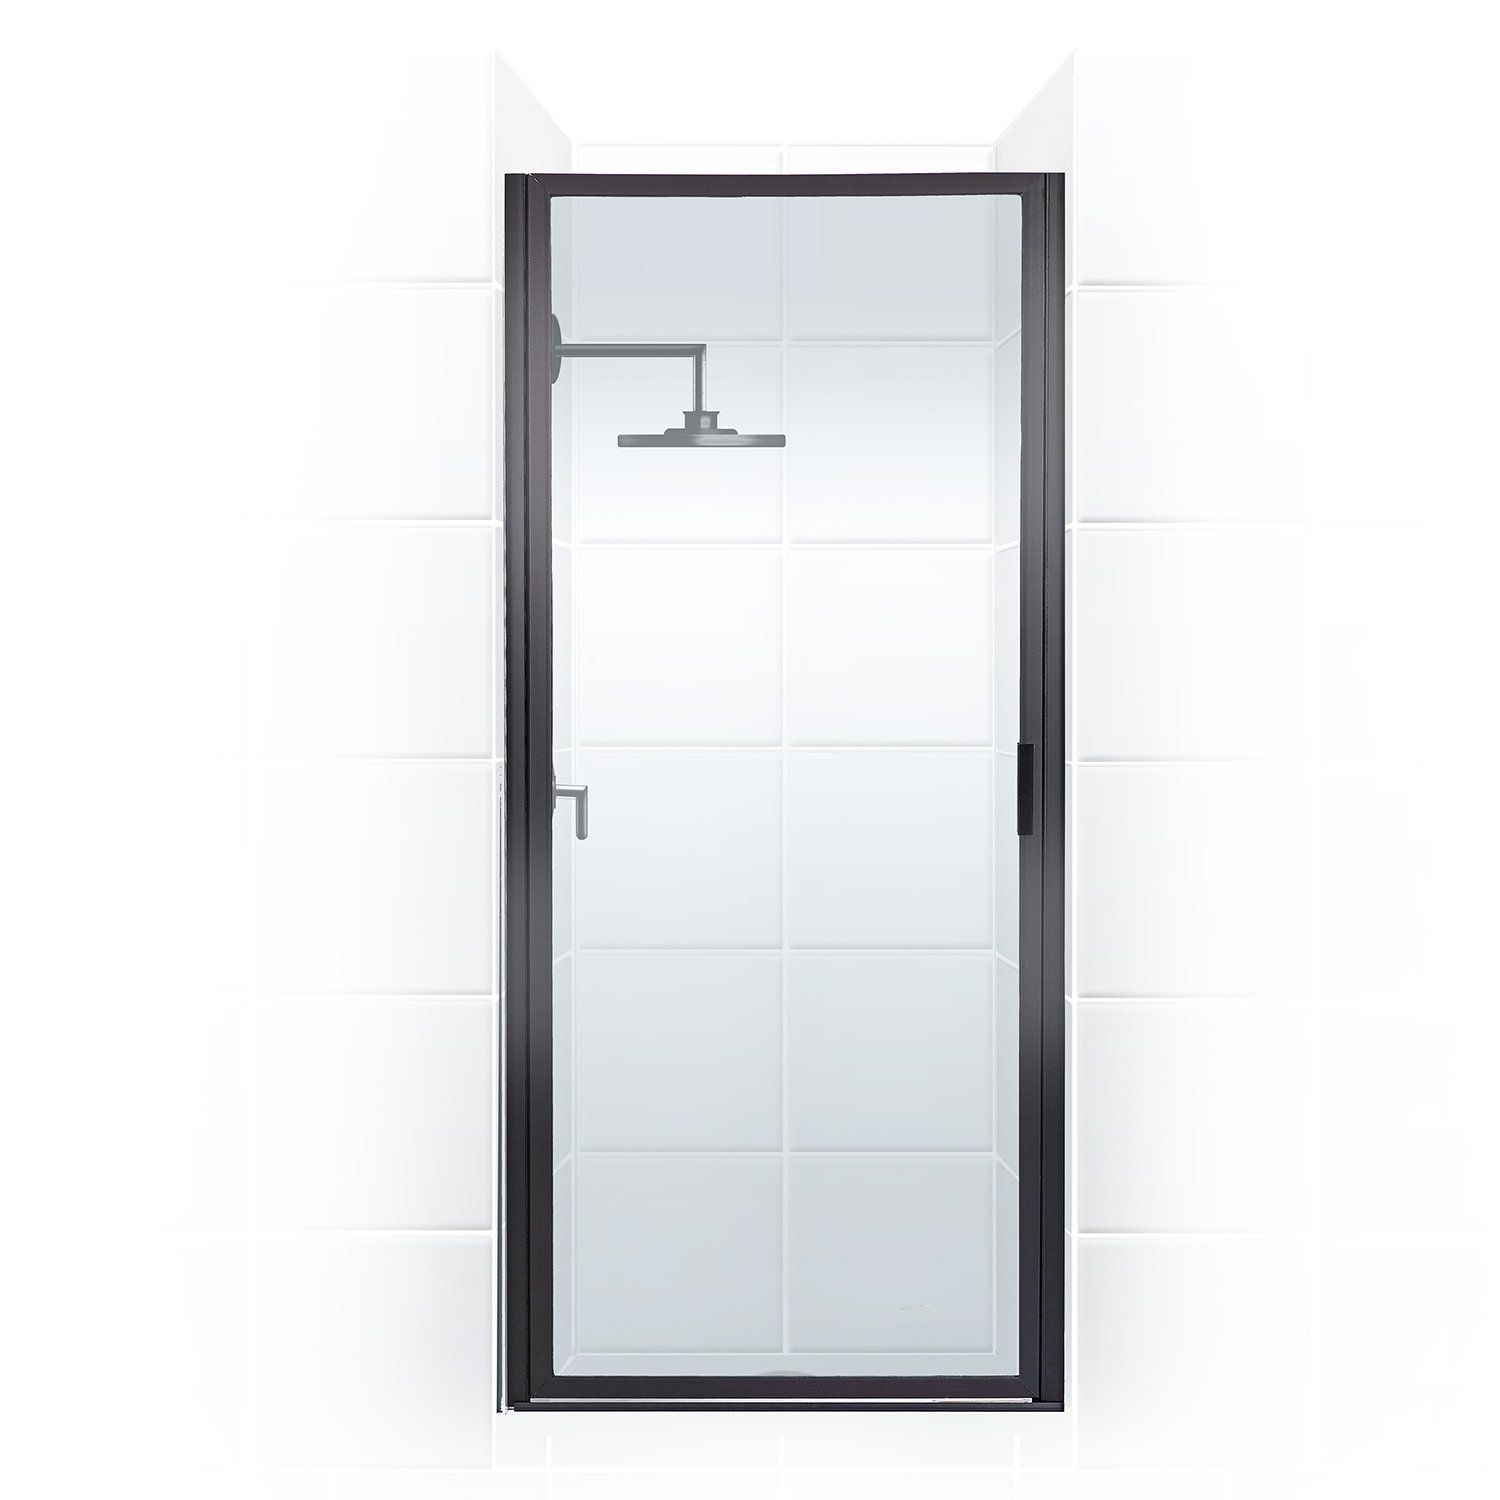 Paragon Series 26 In X 82 In Framed Continuous Hinge Shower Door In Oil Rub Amazon Com Coastal Shower Doors Shower Doors Framed Shower